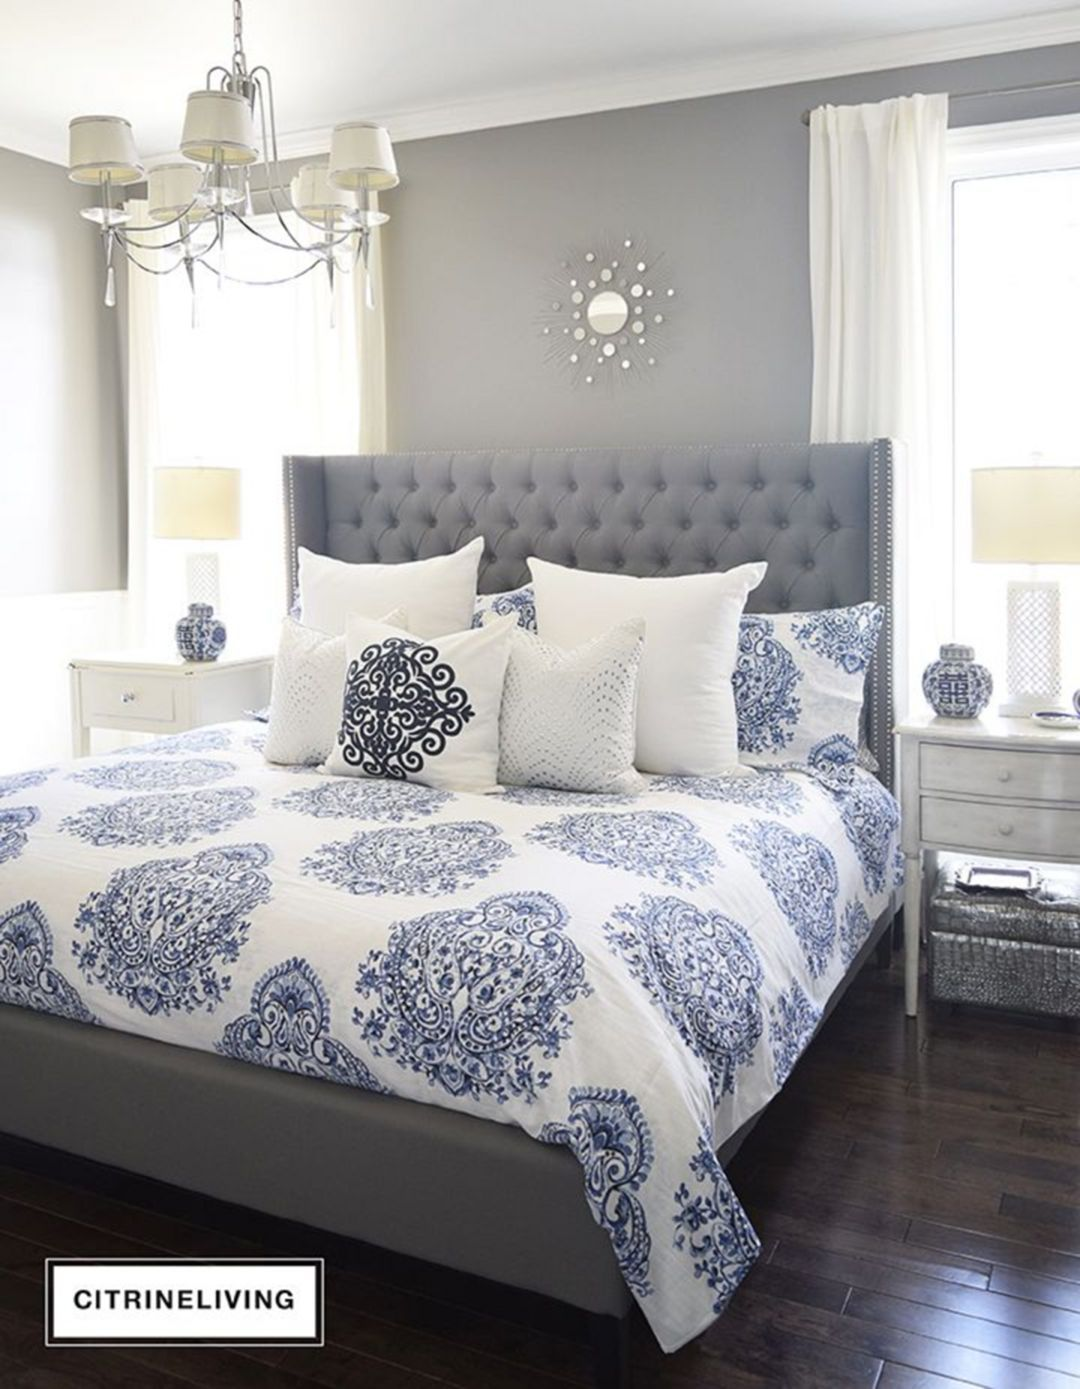 70 Cool Navy And White Bedroom Design Ideas To Make Your Bedroom ...